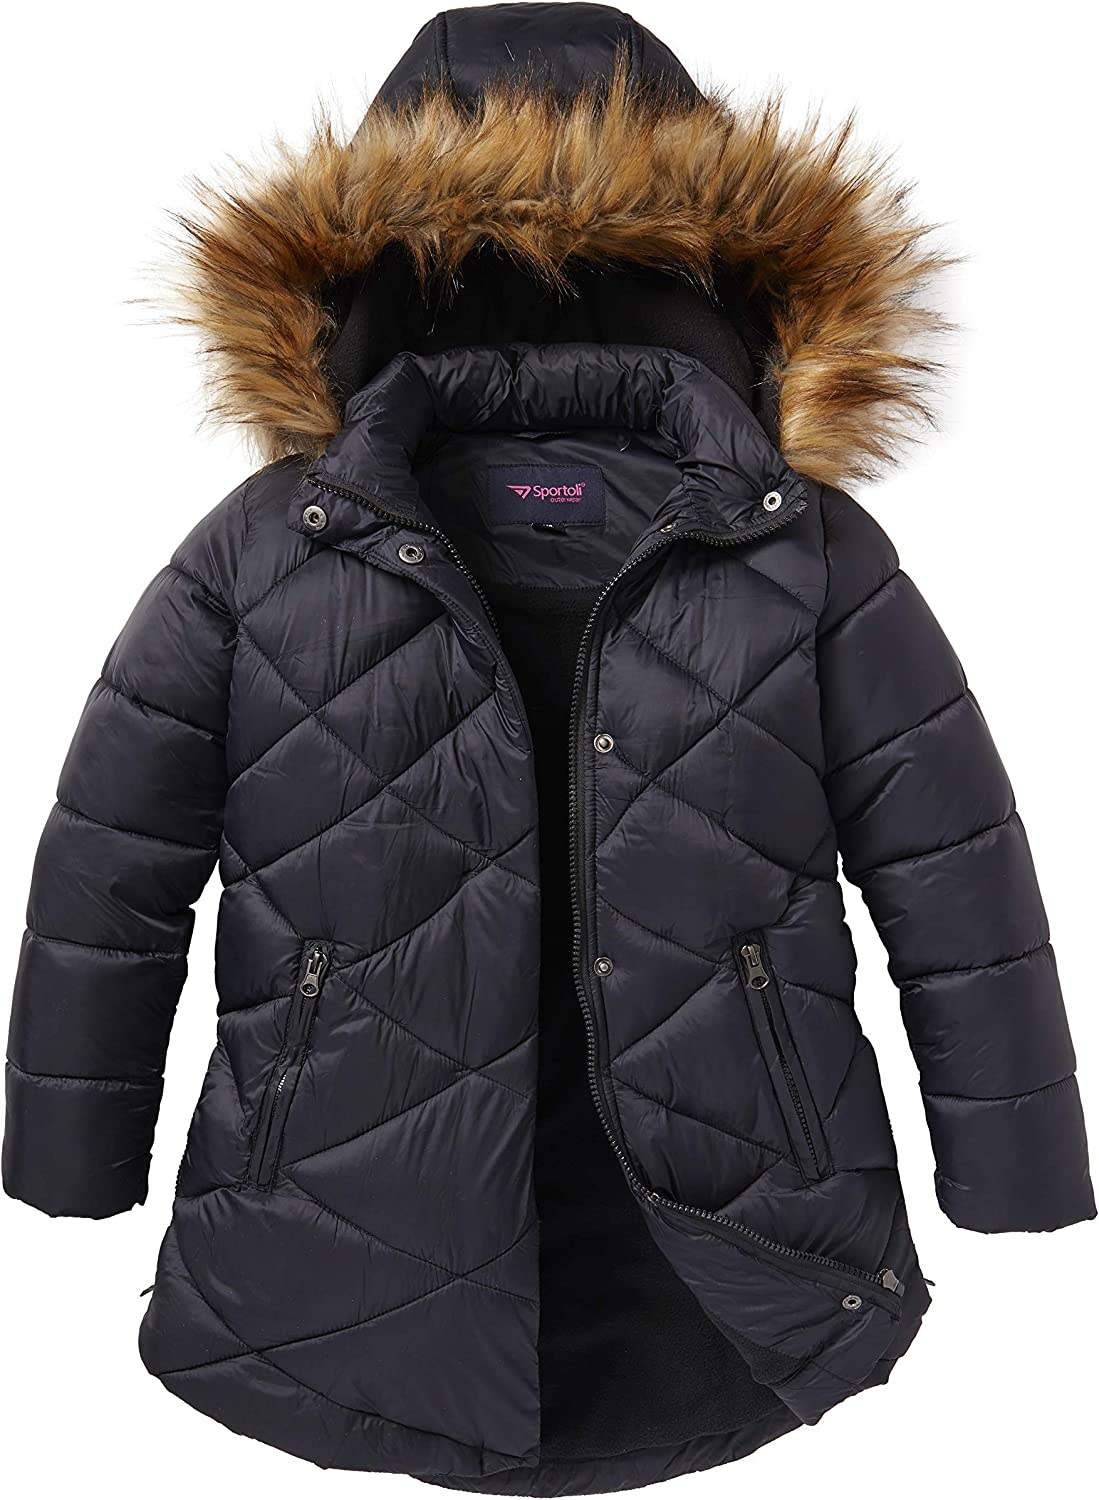 Available Christmas Girls Winter Warm Coats Ear Hooded Faux Fur Fleece Jacket with Padded Inside